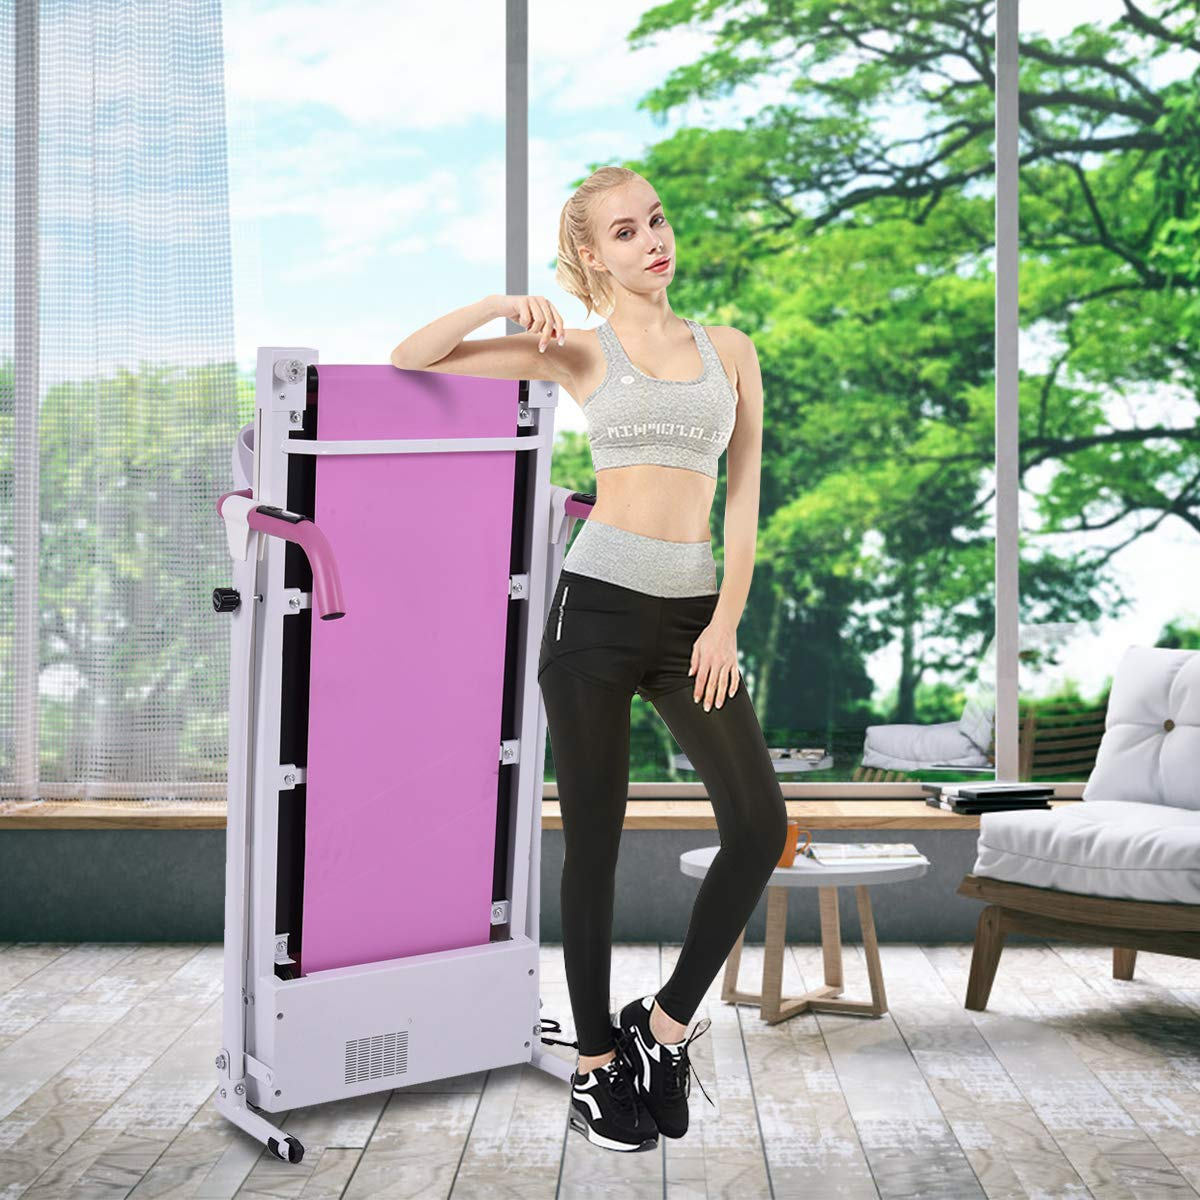 Goplus 800W Folding Treadmill Electric Motorized Power Fitness Running Machine with LED Display and Mobile Phone Holder Perfect for Home Use (Pink) by Goplus (Image #7)